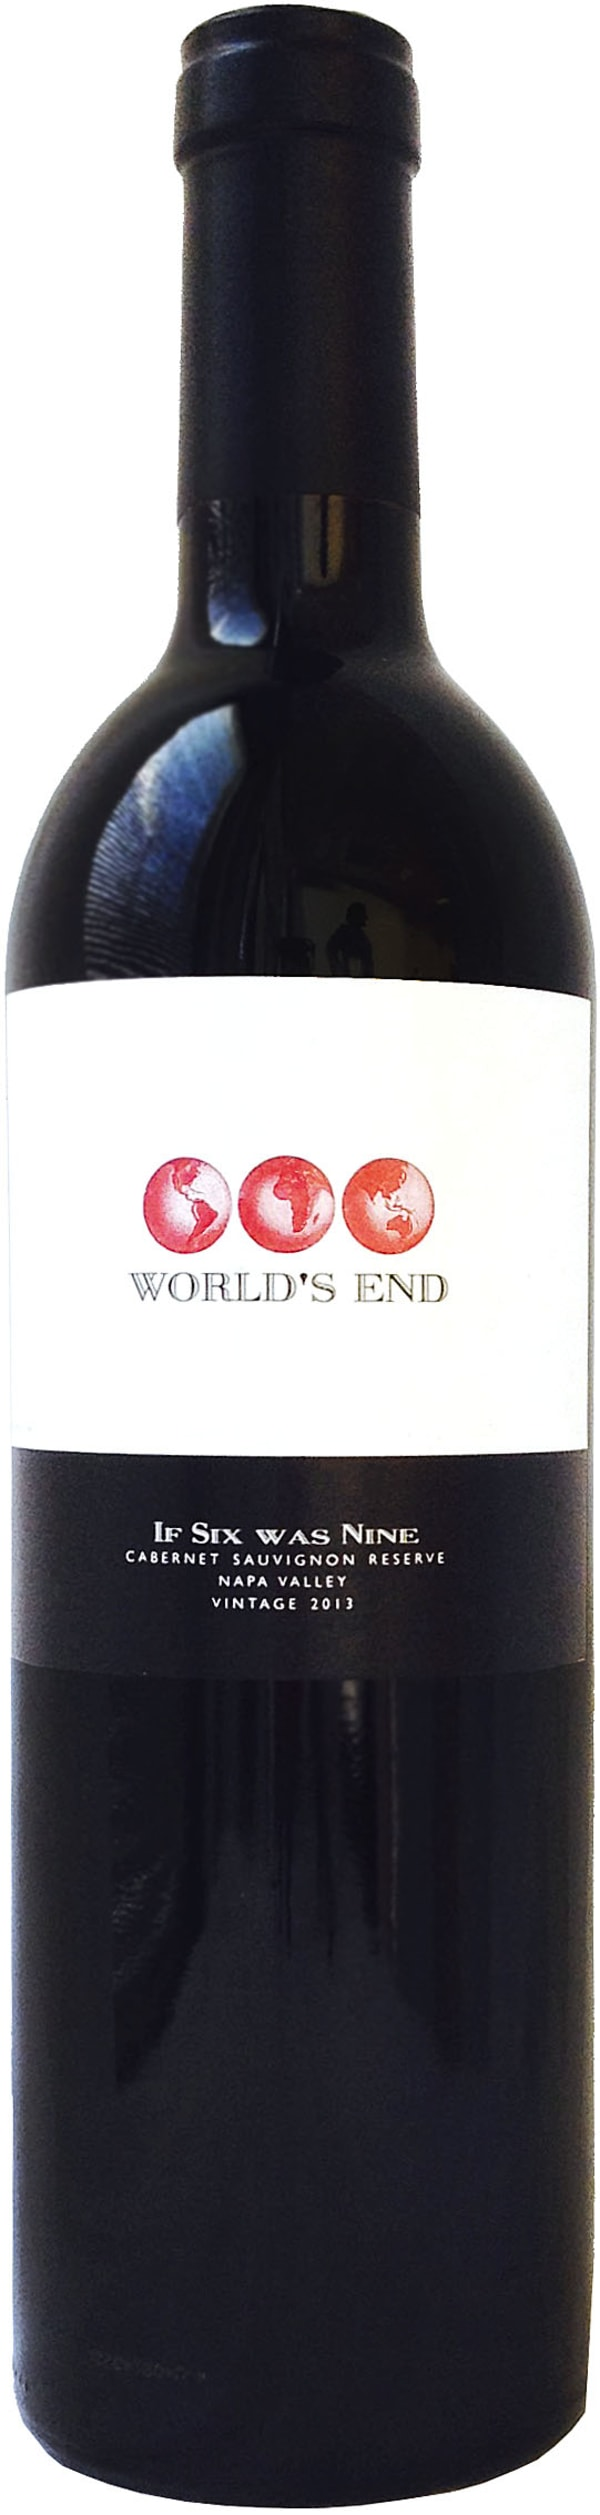 Worlds End If Six Was Nine Cabernet Sauvignon Reserve 2013 2013